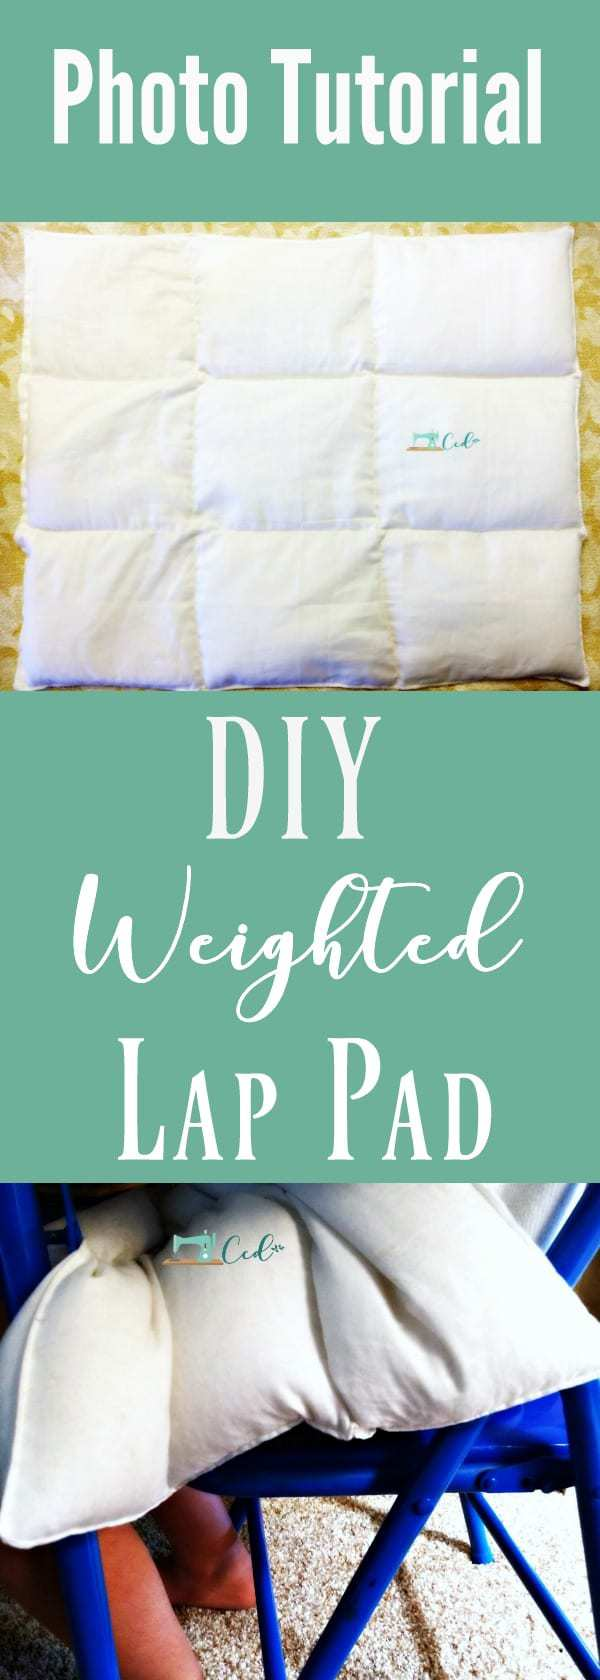 weighted lap pad